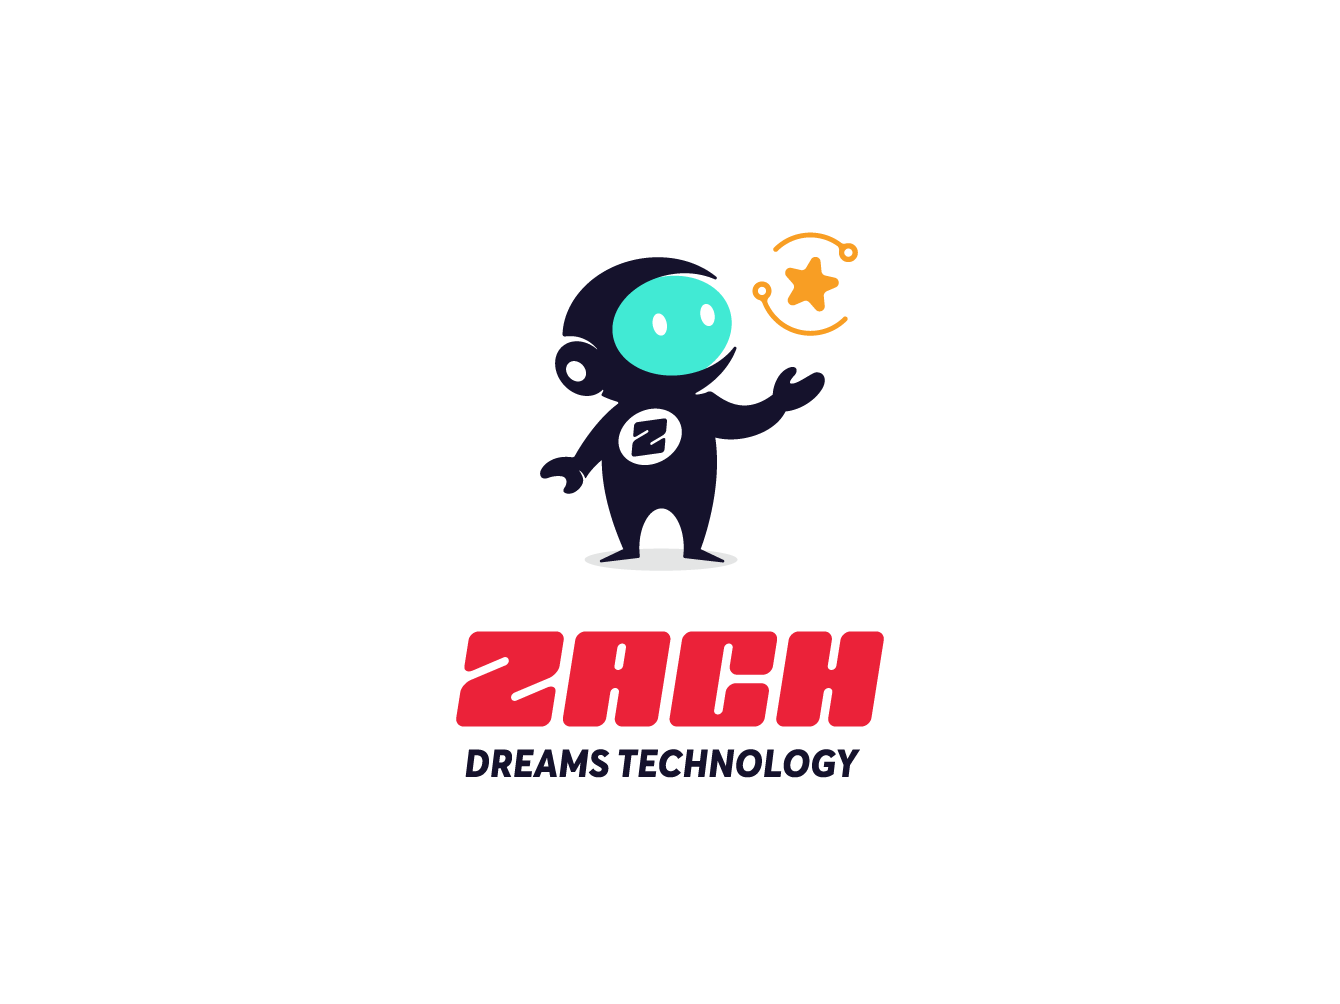 Zach Dreams Technology outerspace space astronaut cosmos mascot logo creative  design unconventional technology tech logo youthful cute branding young illustration flat modern character mascot logo